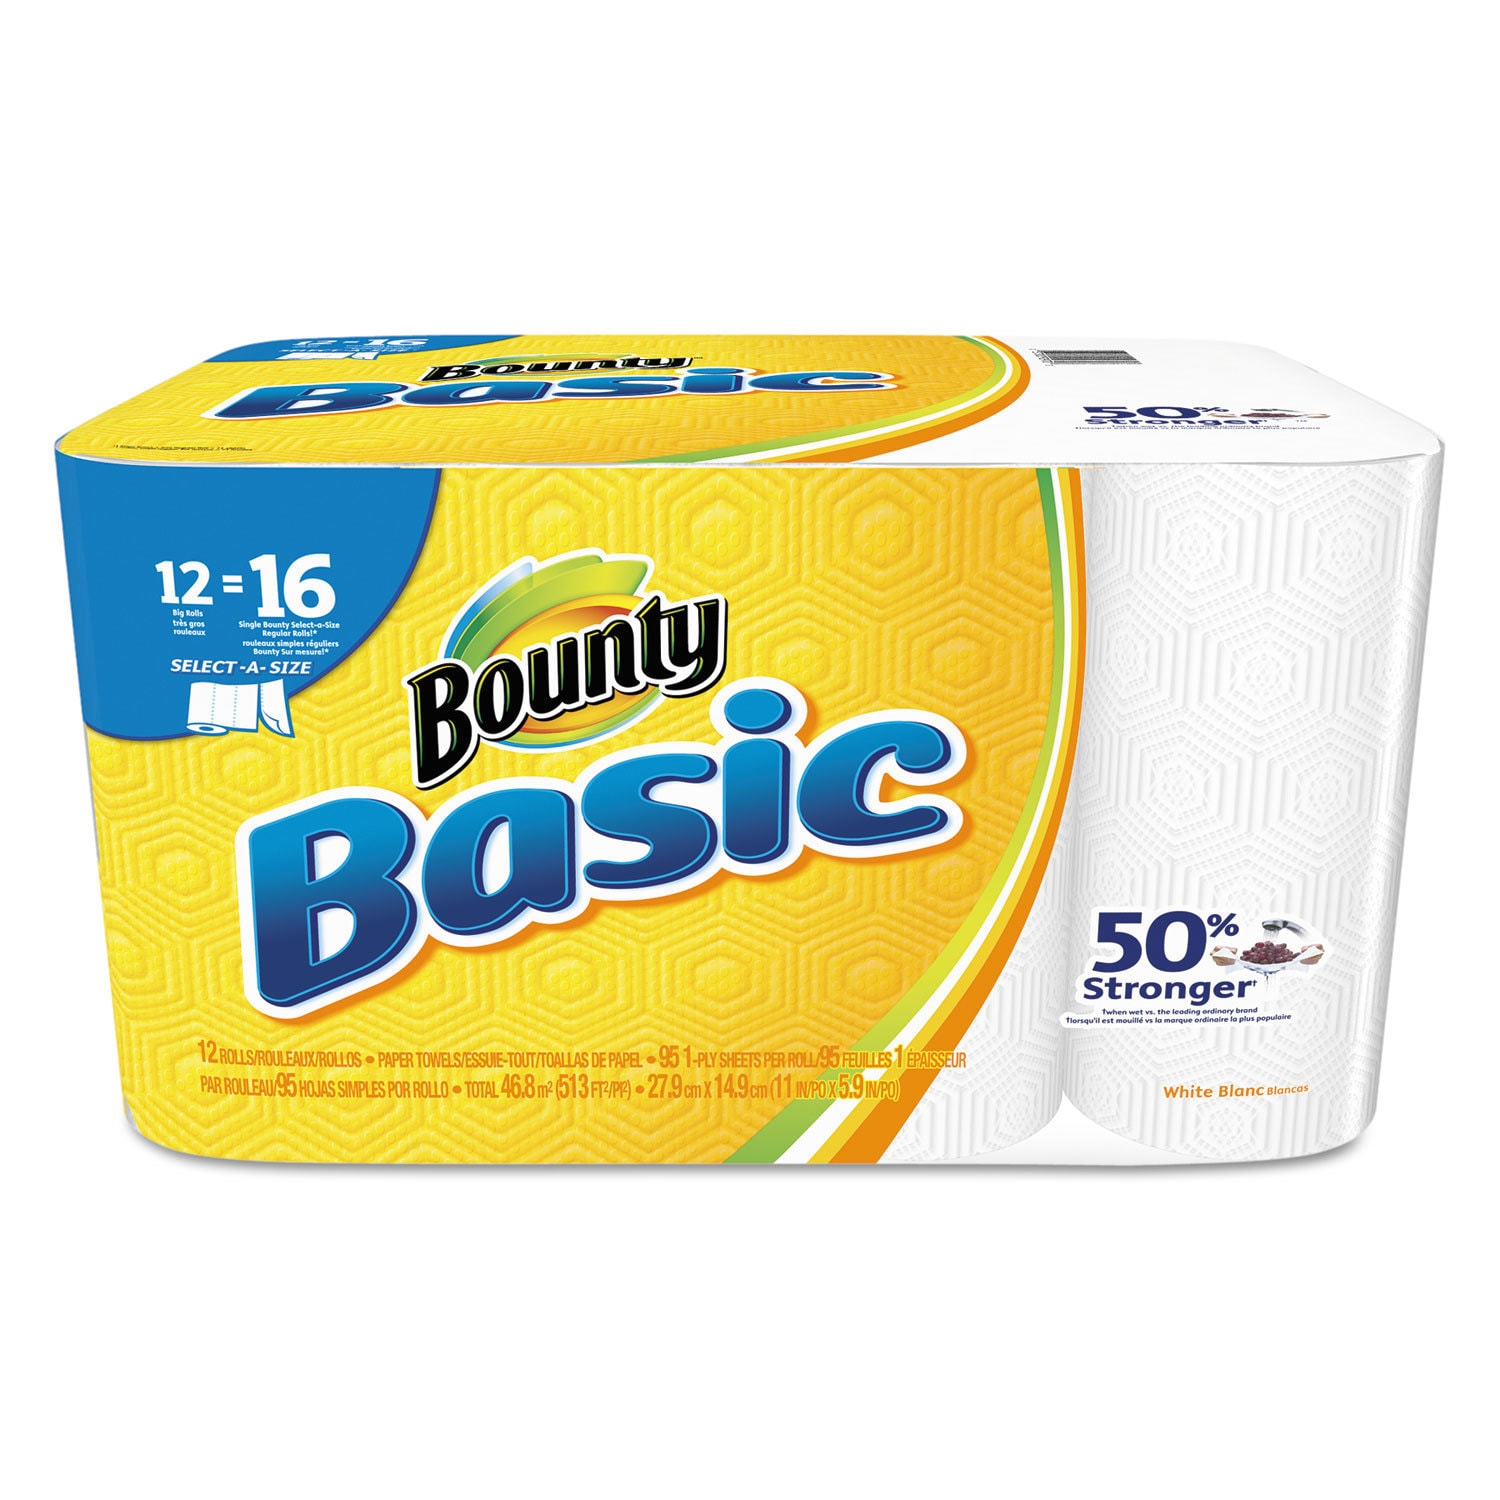 Bounty Basic Select-a-Size Paper Towels 5 9/10 x 11 1-Ply...